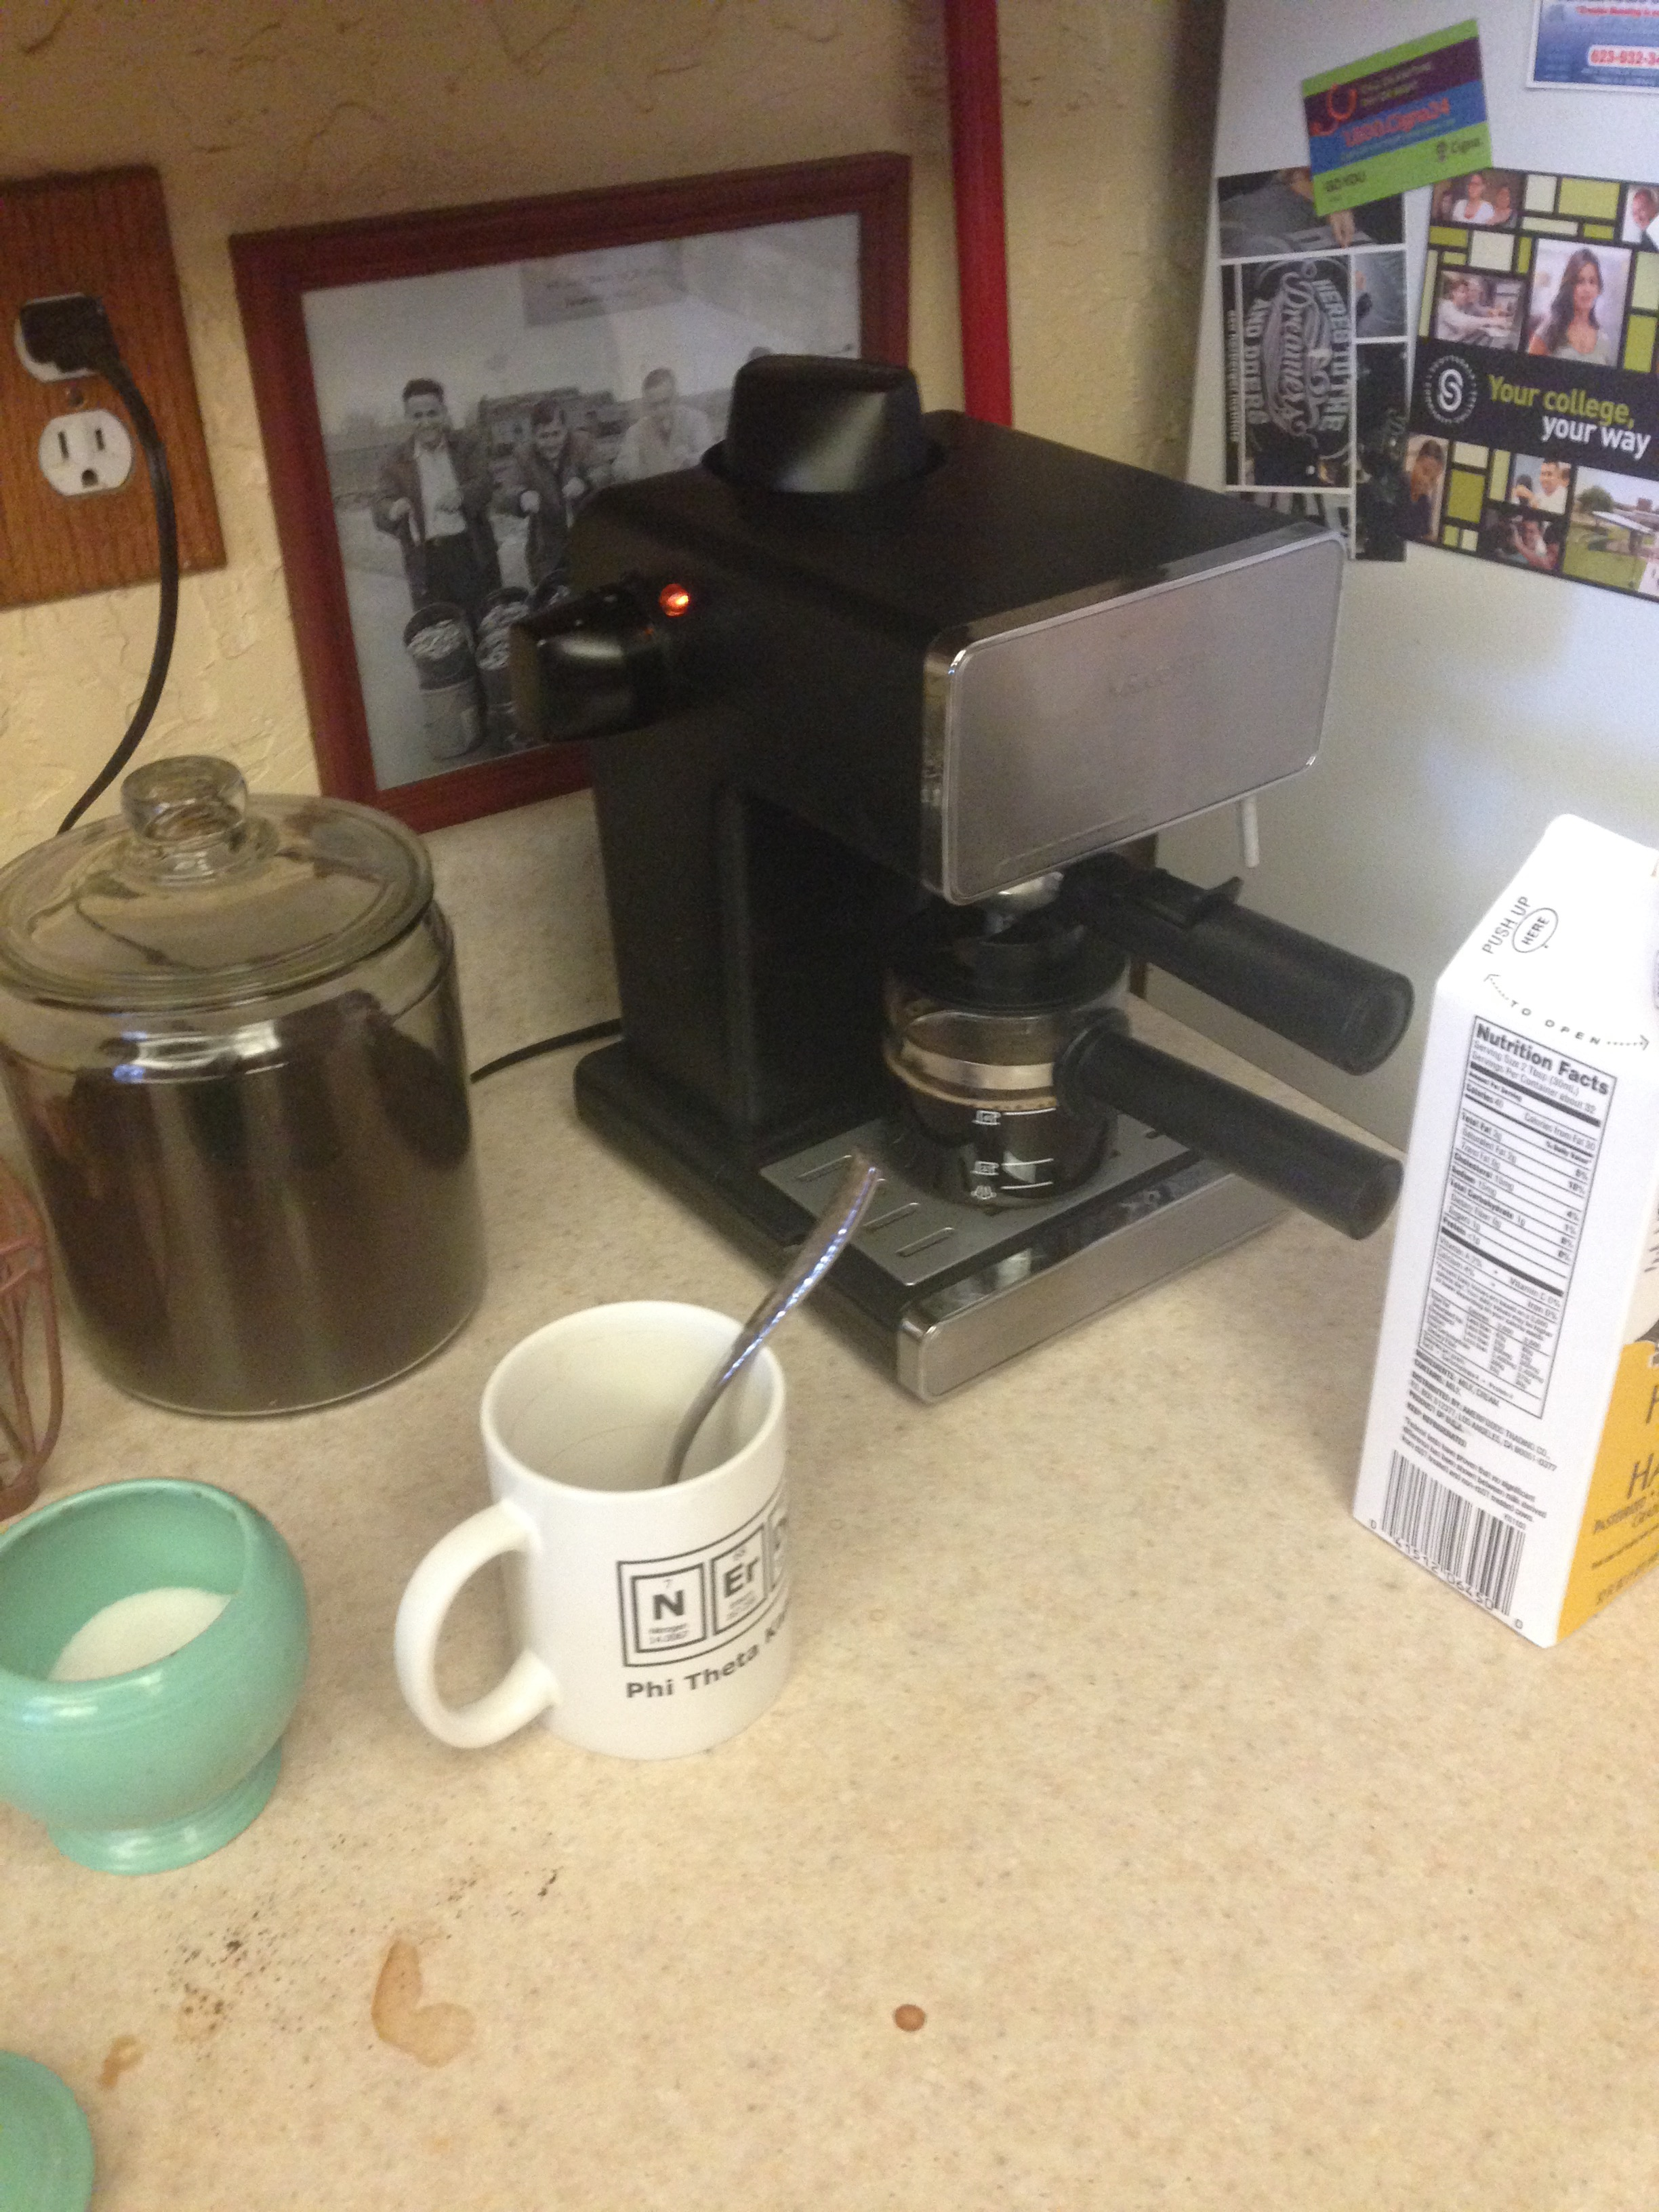 sometimes waiting for the coffee to brew is the hardest part of the day.